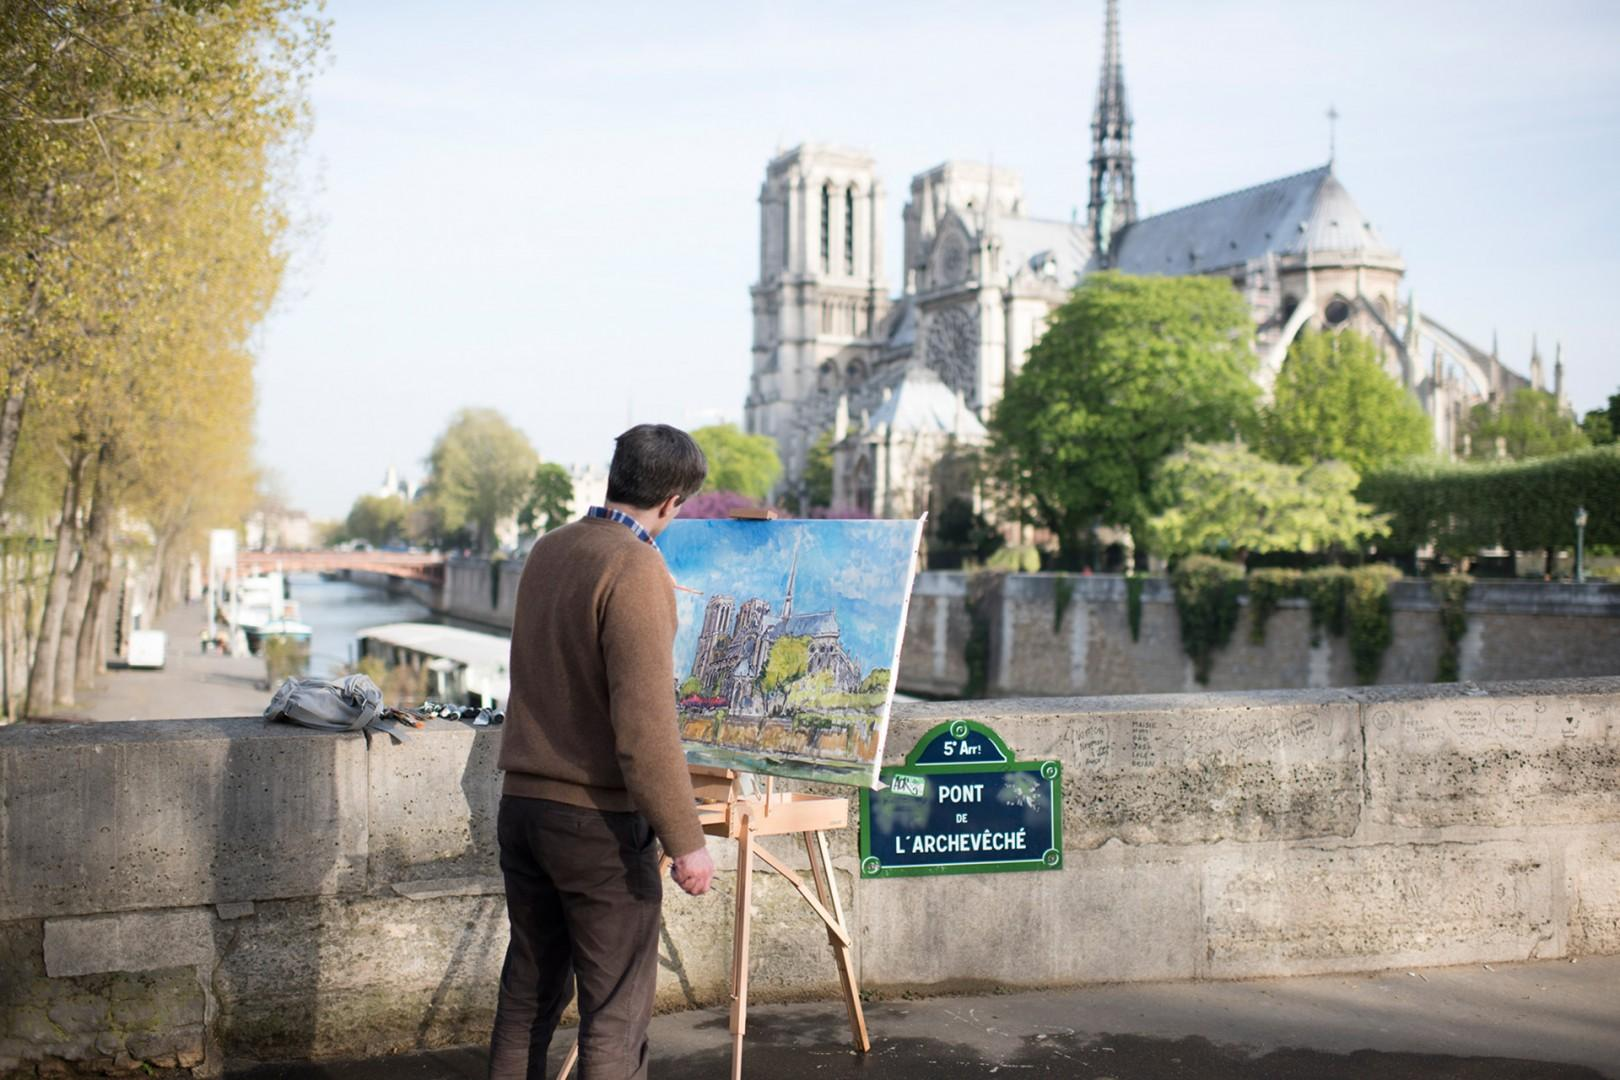 CMS-48-(Spot artists all throughout the city!)-gl-notre-dame-painter